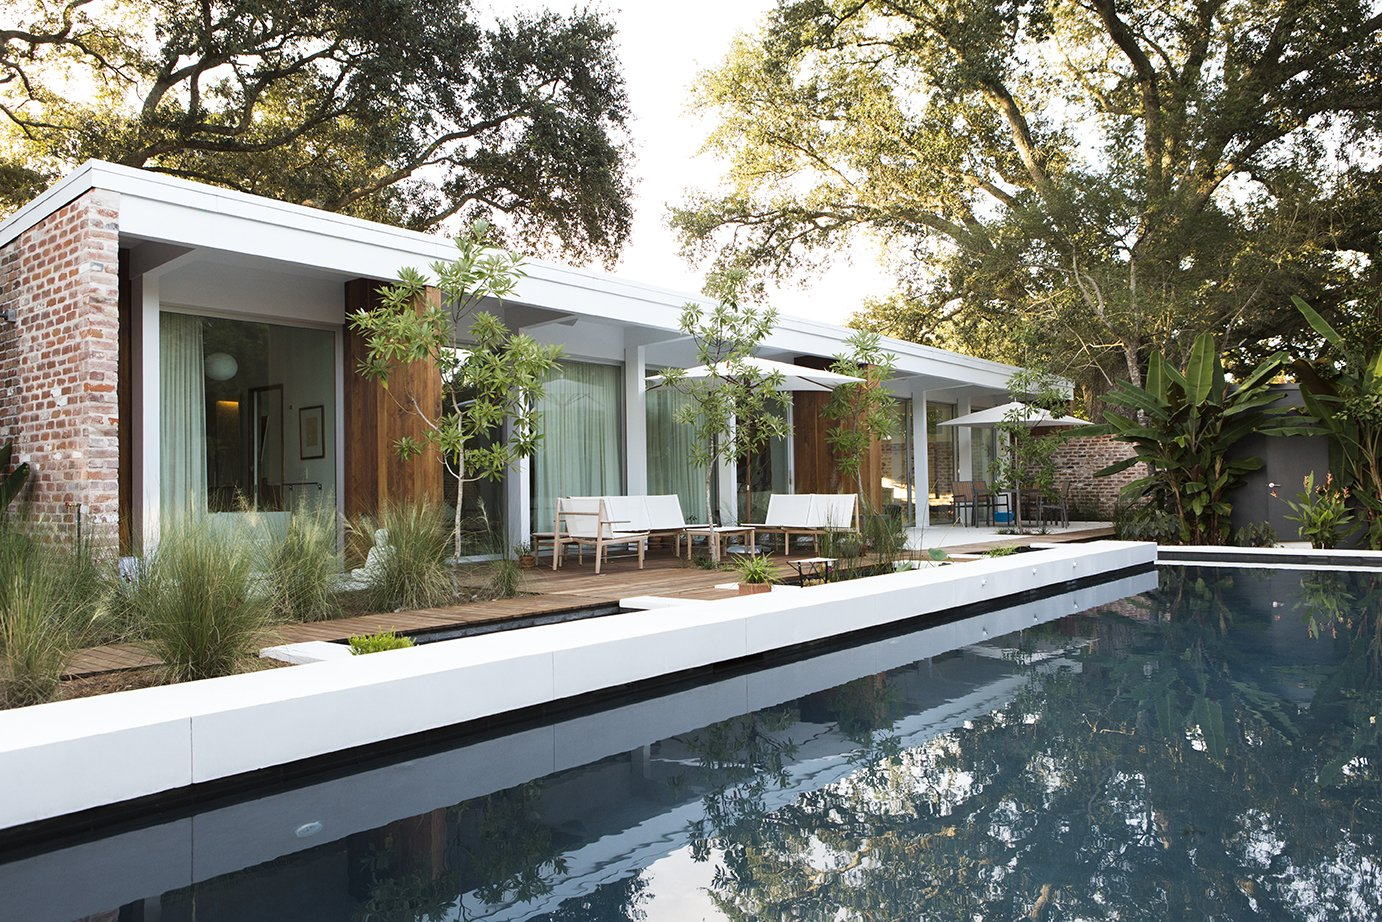 To revive the original architects' vision, studioWTA restored a four-foot roof overhang above a wall of La Cantina sliders. The shade helps limit solar gain, while a pool by Evans + Lighter Landscape Architecture provides respite on sweltering summer days. Tagged: Outdoor, Large Pools, Tubs, Shower, Swimming Pools, Tubs, Shower, Large Patio, Porch, Deck, and Wood Patio, Porch, Deck.  Emerald Street Residence by Dwell from Back to the Garden